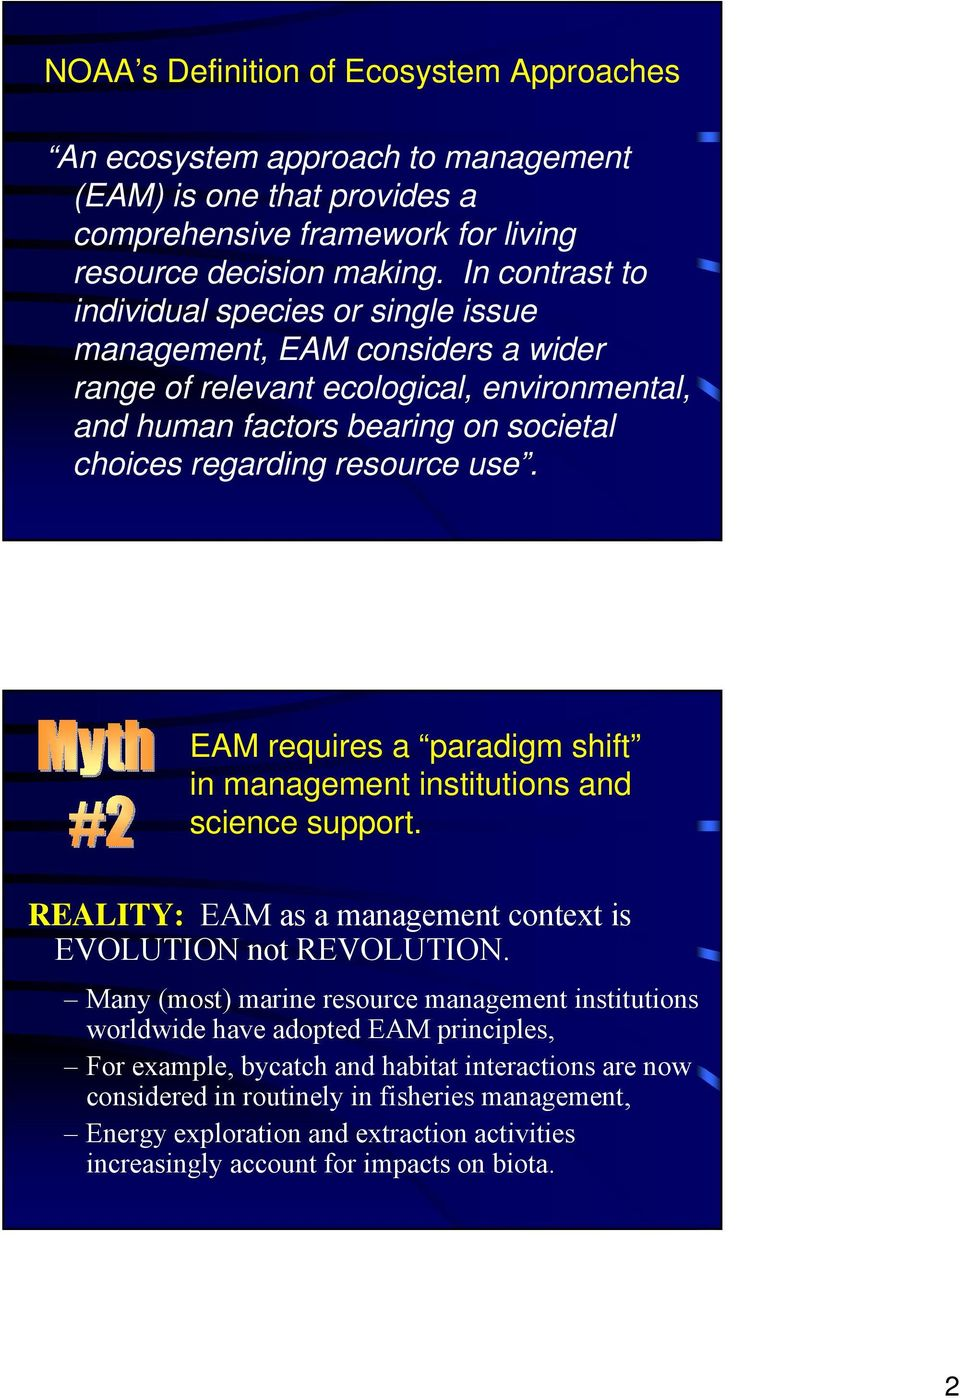 EAM requires a paradigm shift in management institutions and science support. REALITY: EAM as a management context is EVOLUTION not REVOLUTION.